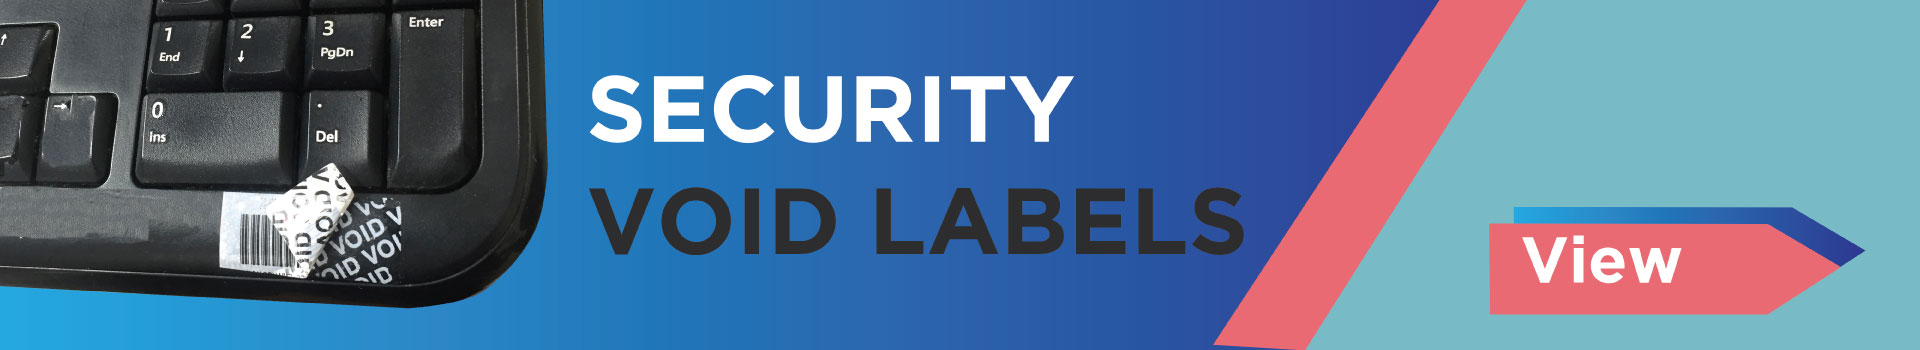 Security Void Labels